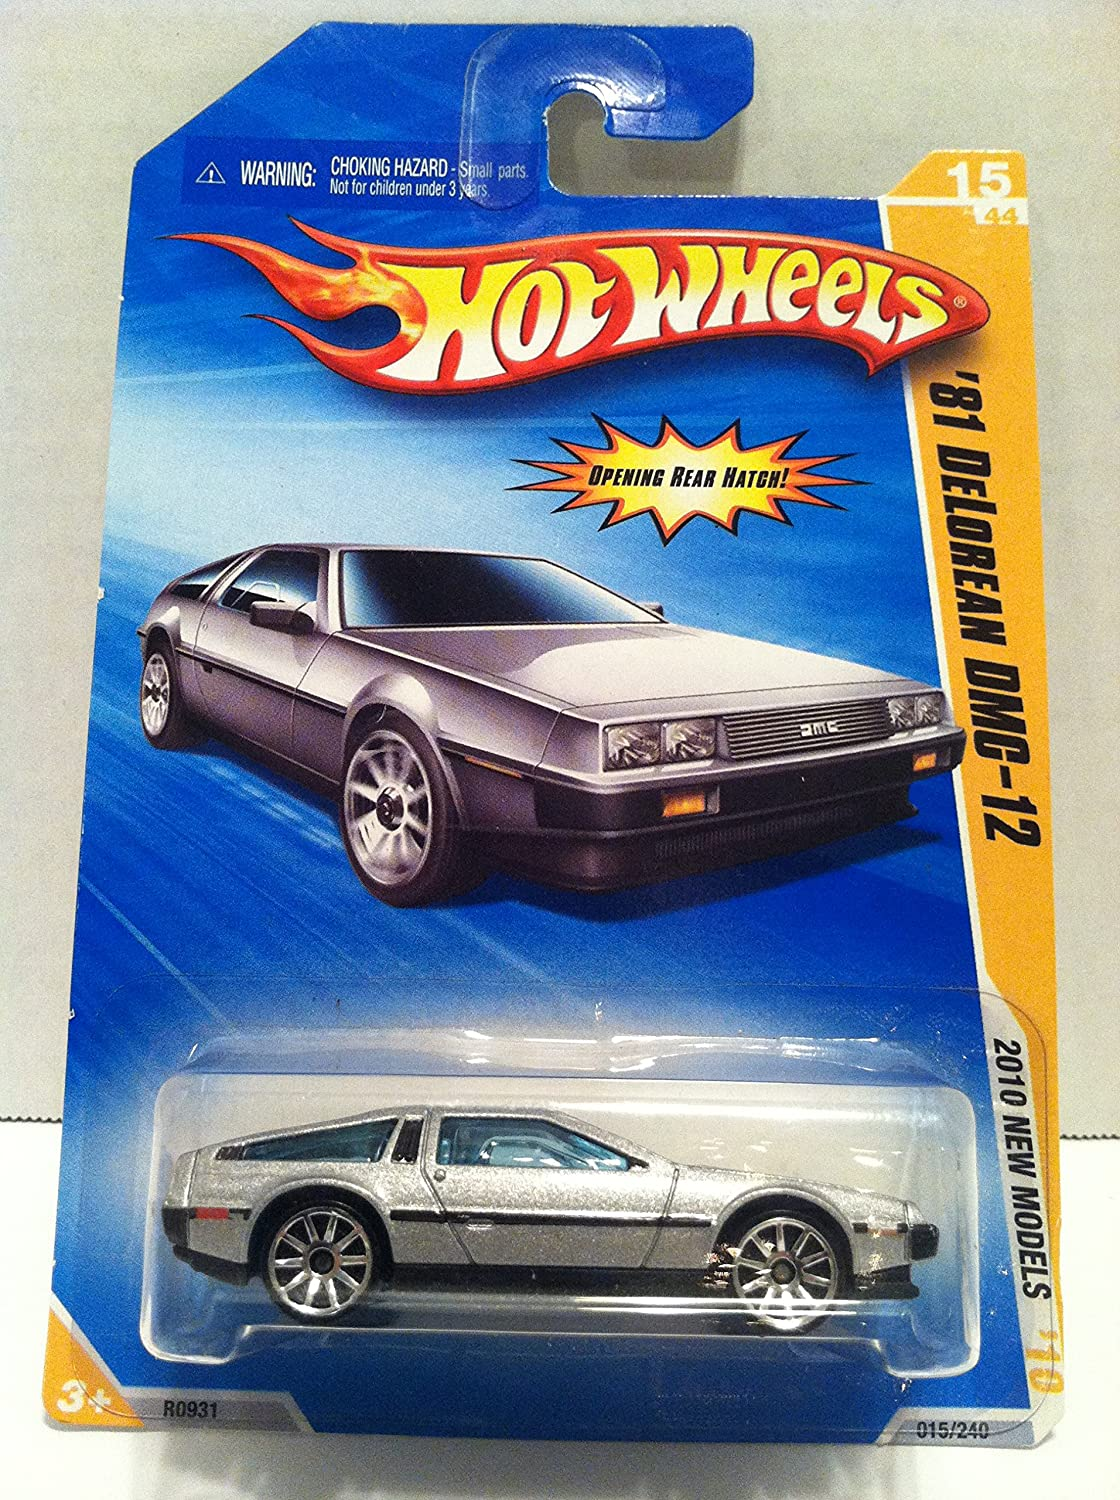 Hot Wheels 2010-015 New Models '81 Delorean Dmc-12 Silver 1:64 Scale Mattel